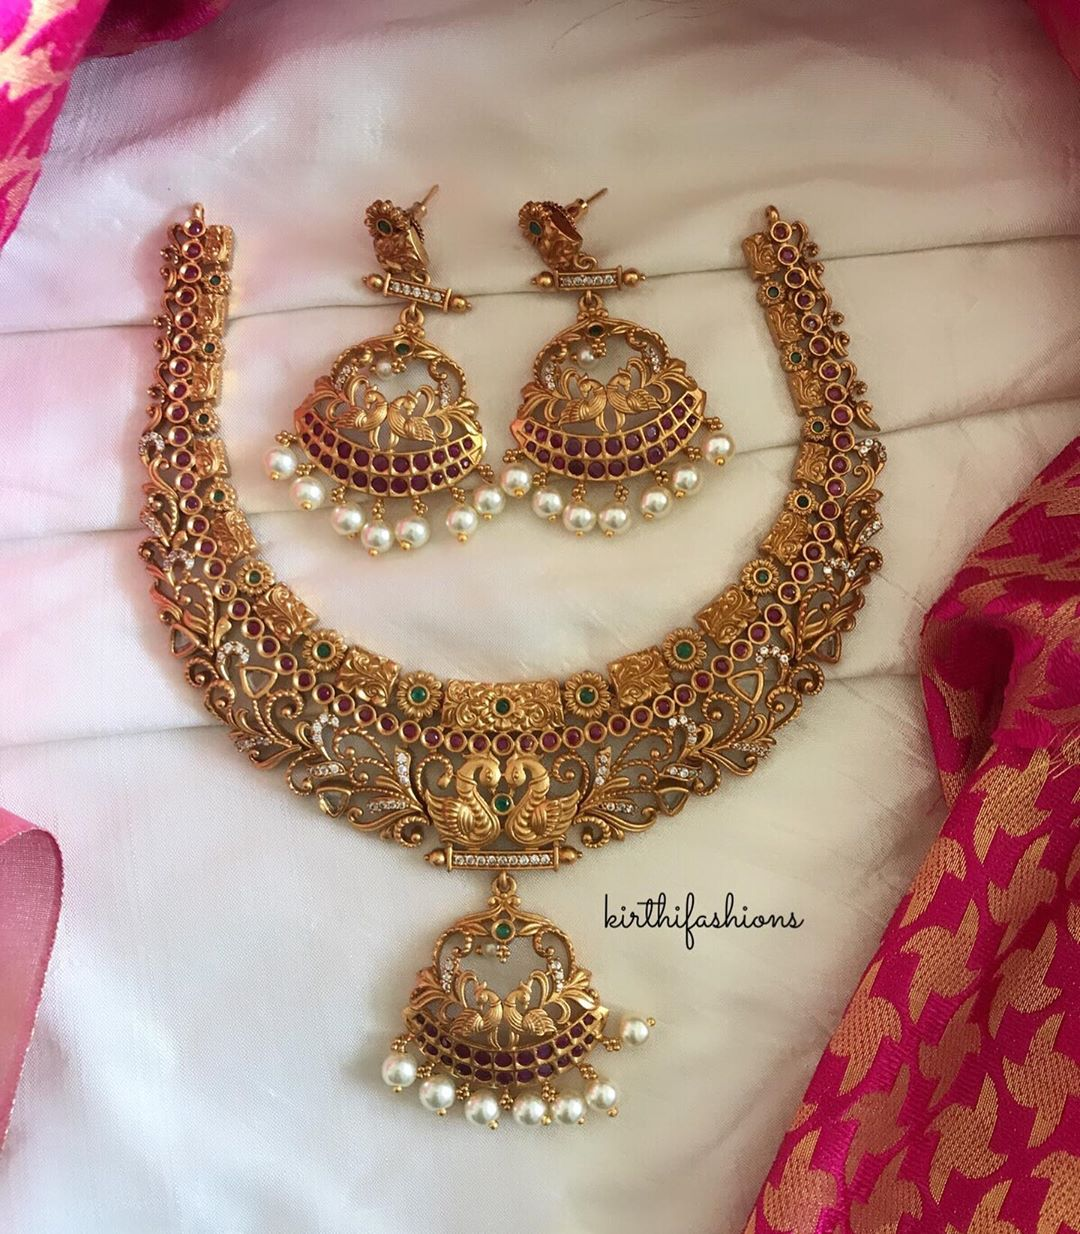 imitation-jewellery-online-shopping-2